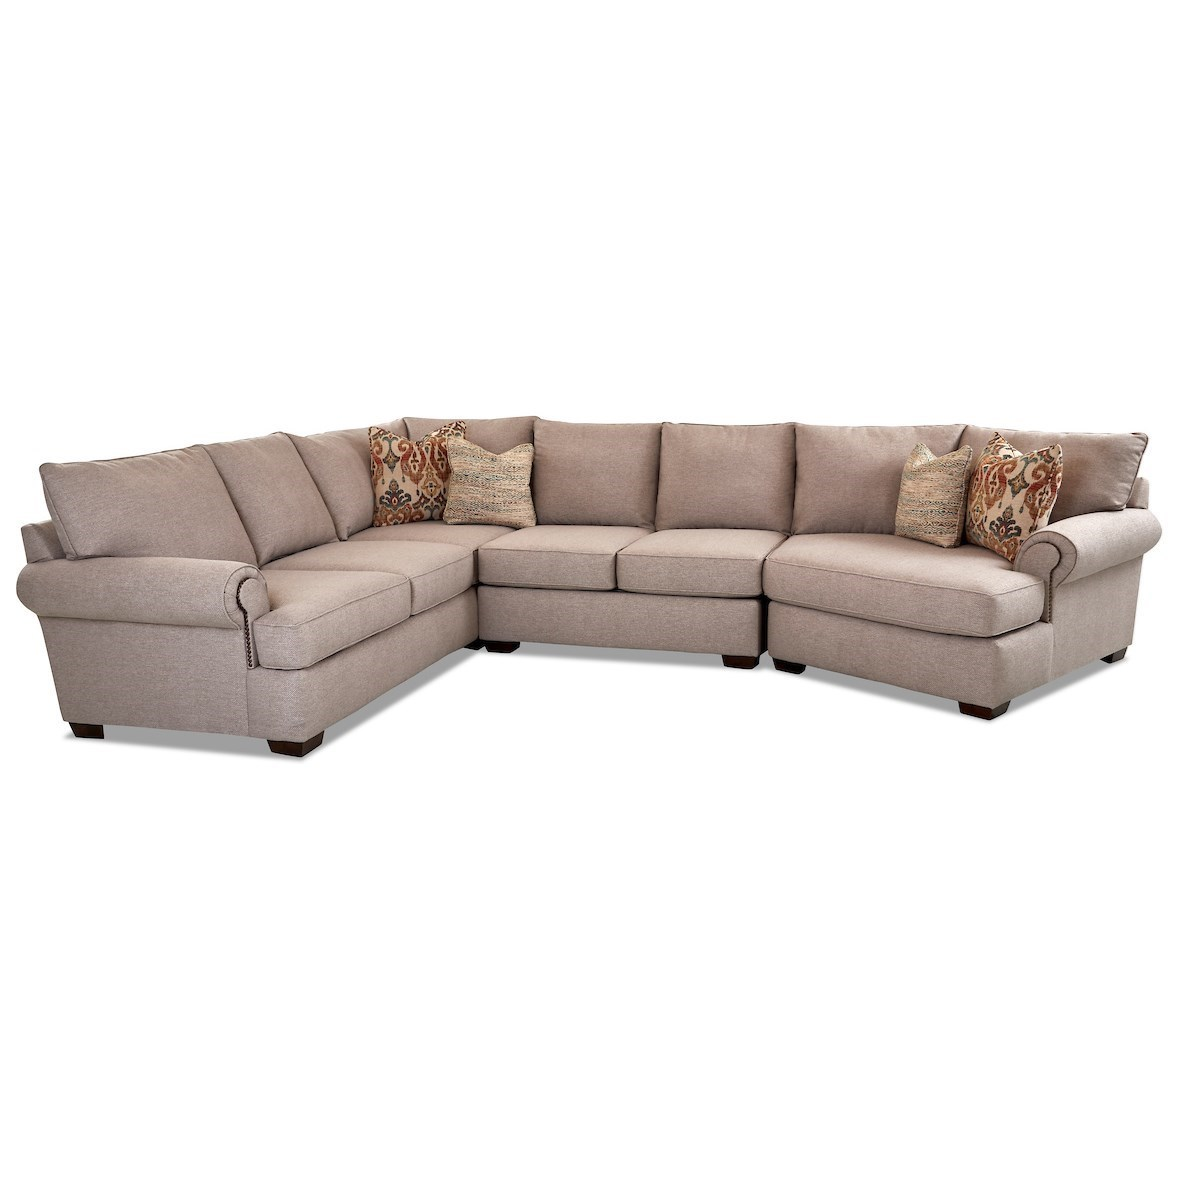 Ginger 5-Seat Sectional Sofa w/ RAF Cuddler Chair by Klaussner at Johnny Janosik